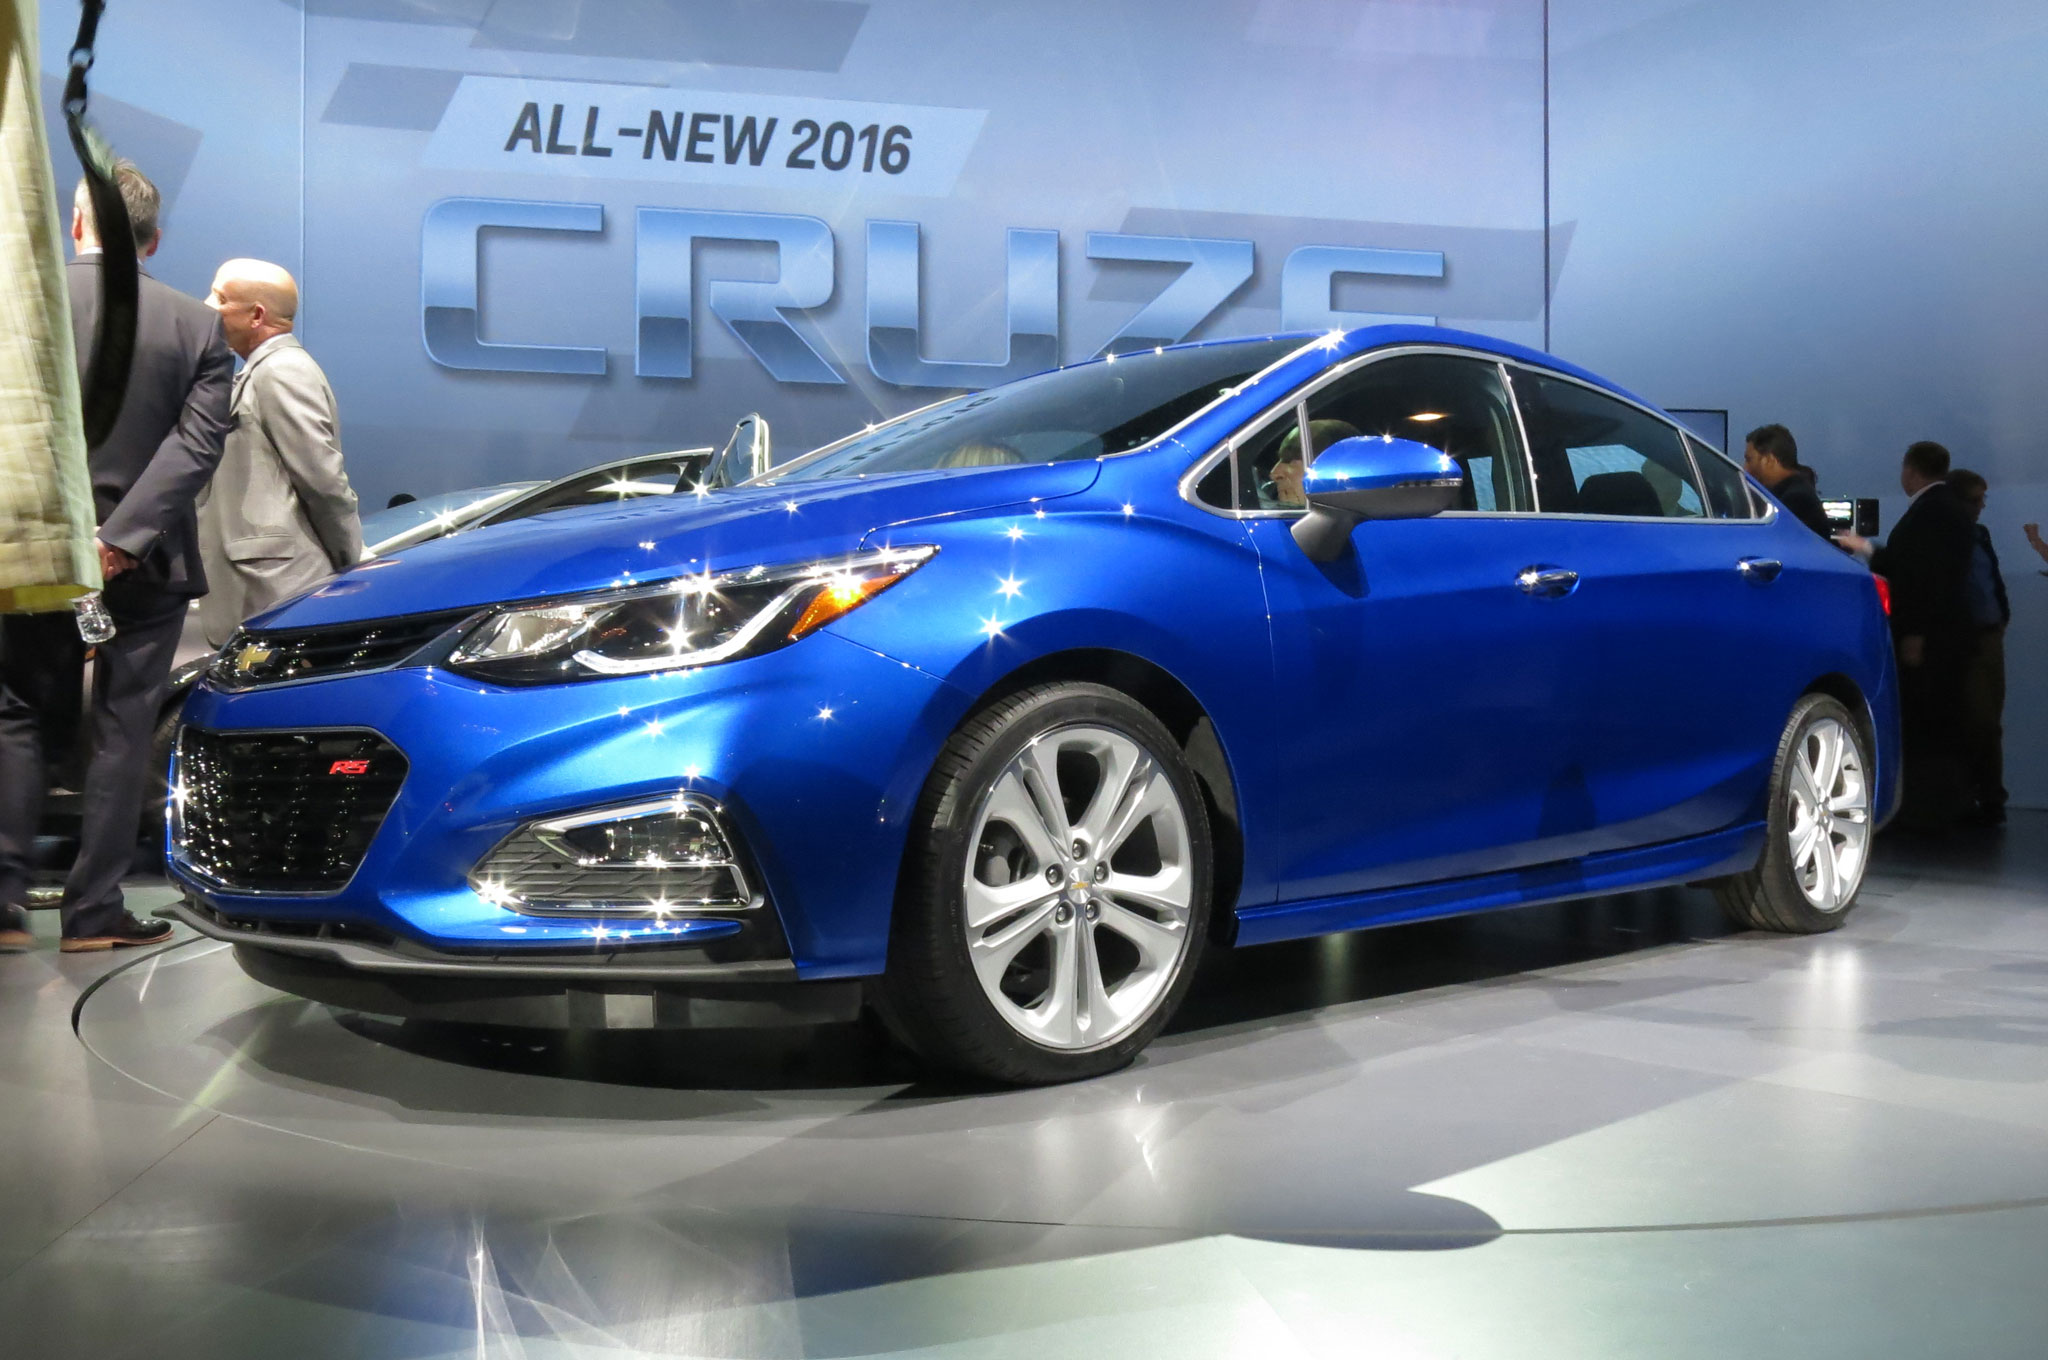 Chief Engineer: Most 2016 Chevrolet Cruze Models To Get 40+ MPG Hwy